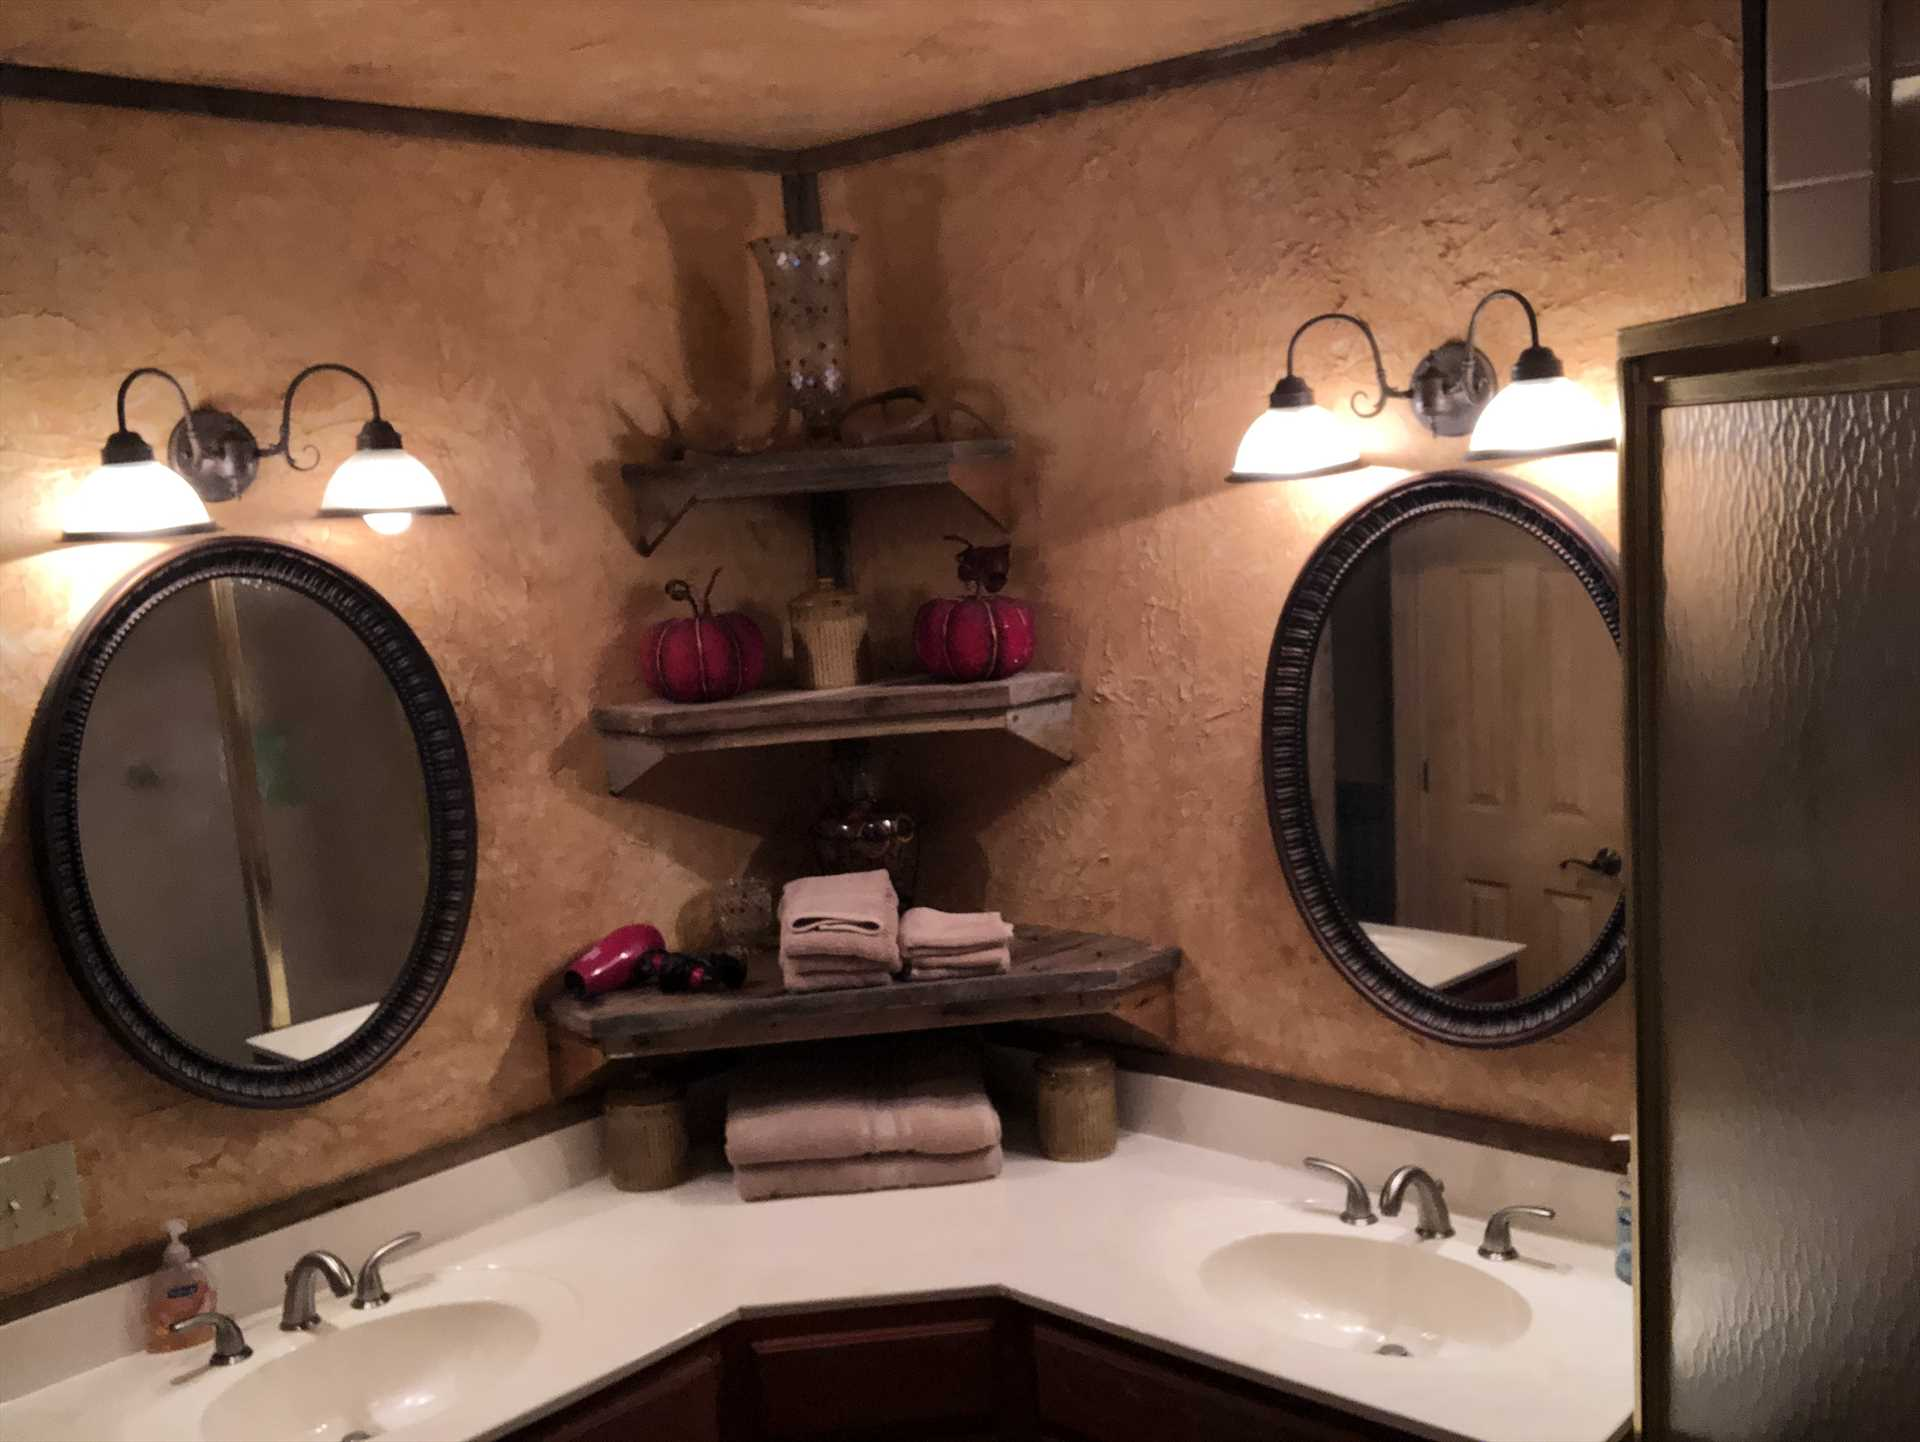 Twin vanities and a roomy shower stall round out a master bedroom fit for royalty!